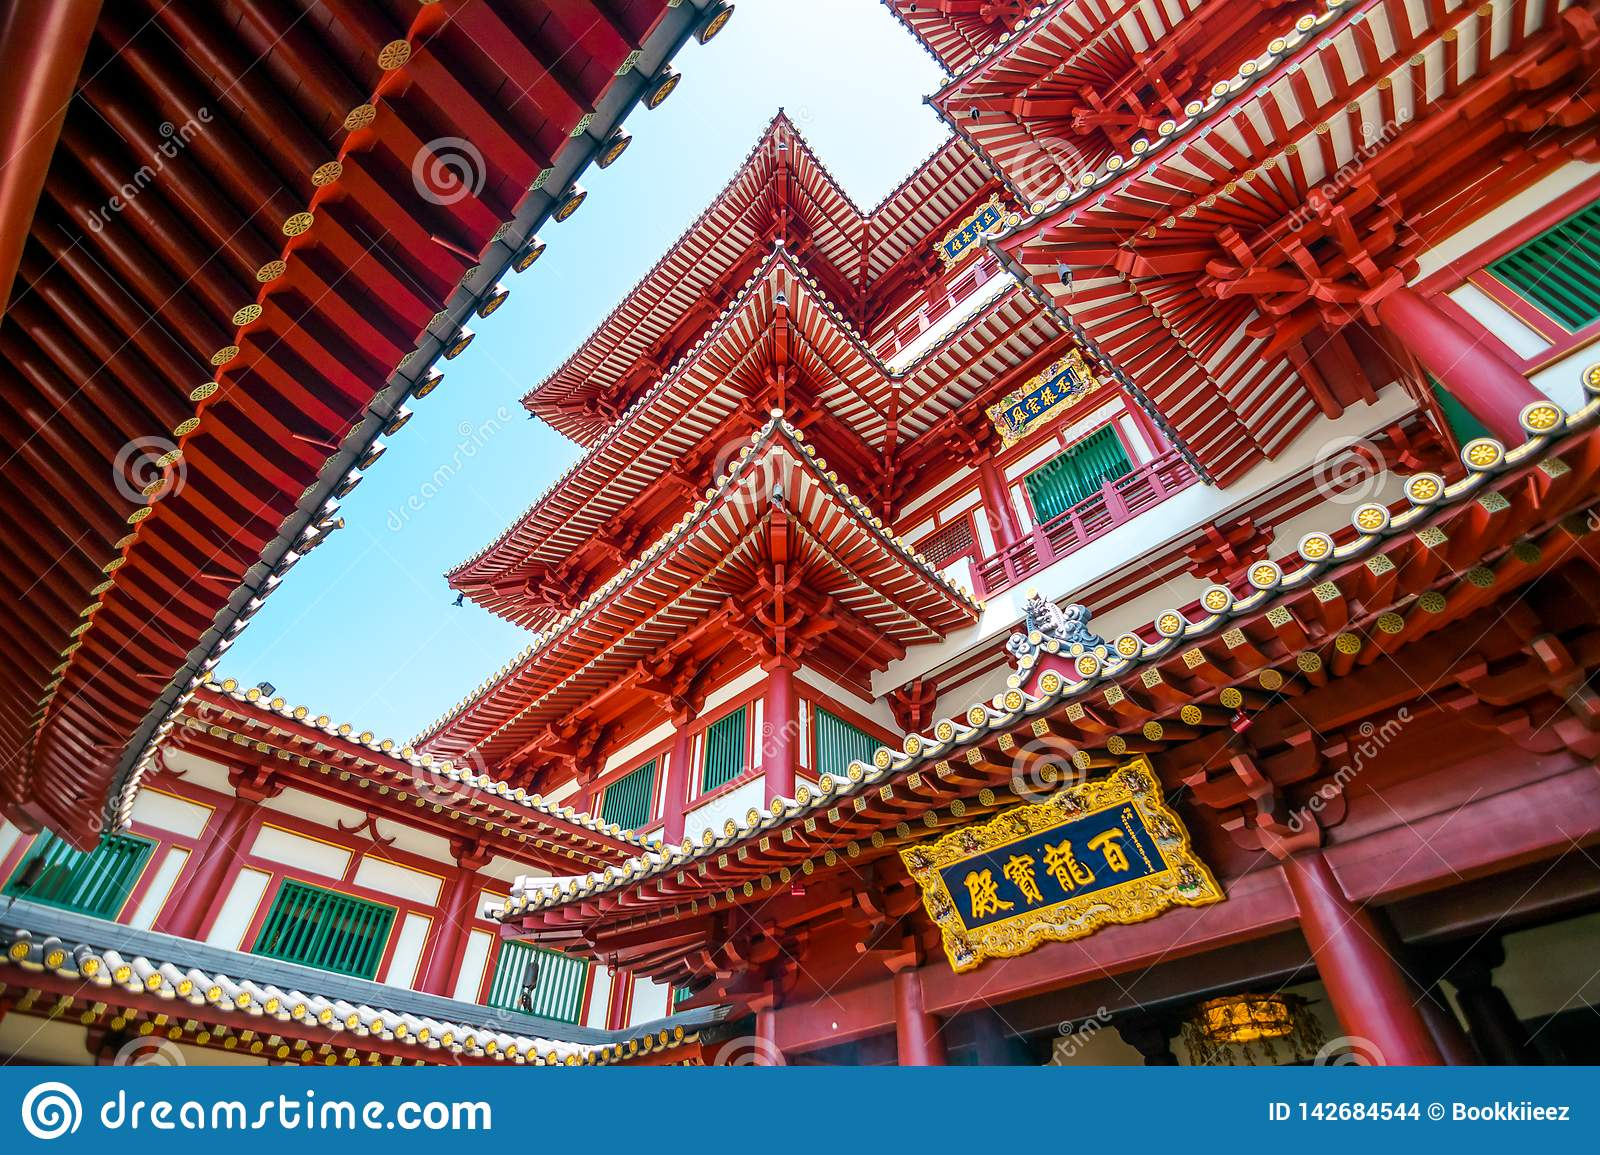 The Buddha Tooth Relic Temple.